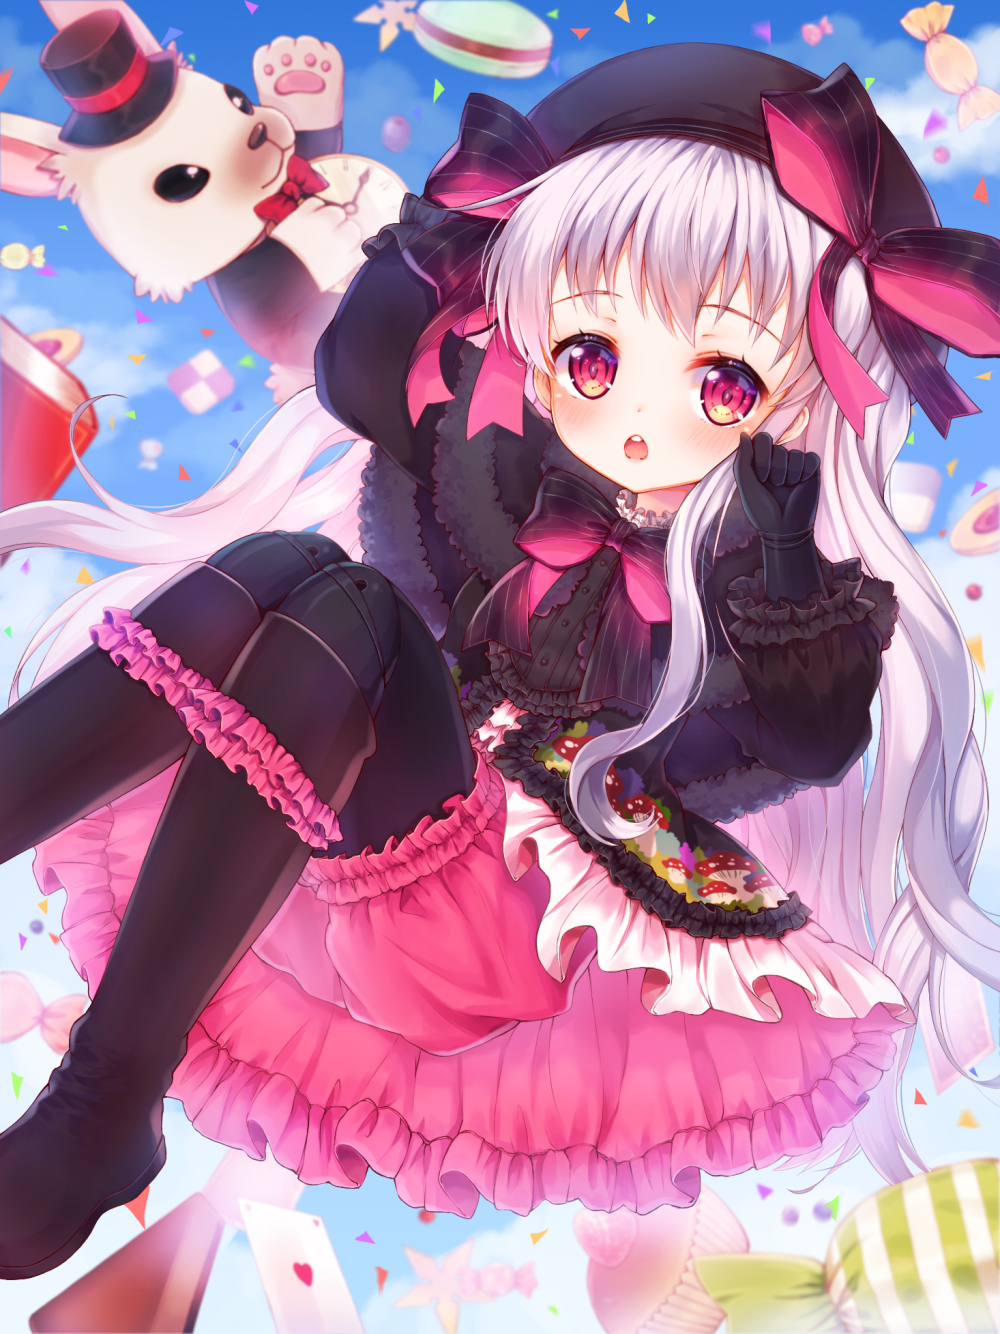 1girl arm_up bangs beret black_bow black_cape black_dress black_footwear black_gloves black_hat black_legwear bloomers blue_sky blurry blurry_background blush boots bow candy_wrapper cape capelet card checkerboard_cookie chestnut_mouth clouds commentary_request cookie day depth_of_field doll_joints dress elbow_gloves eyebrows_visible_through_hair fate/extra fate_(series) food food_print foreign_blue frilled_boots frilled_footwear frills fur-trimmed_capelet fur_trim gloves gothic_lolita hand_up hat hat_bow heart highres knee_boots lolita_fashion long_hair long_sleeves macaron midair mushroom_print nursery_rhyme_(fate/extra) open_mouth outdoors pantyhose playing_card print_dress puffy_long_sleeves puffy_sleeves red_eyes round_teeth silver_hair sky solo star striped striped_bow teeth underwear upper_teeth very_long_hair white_rabbit